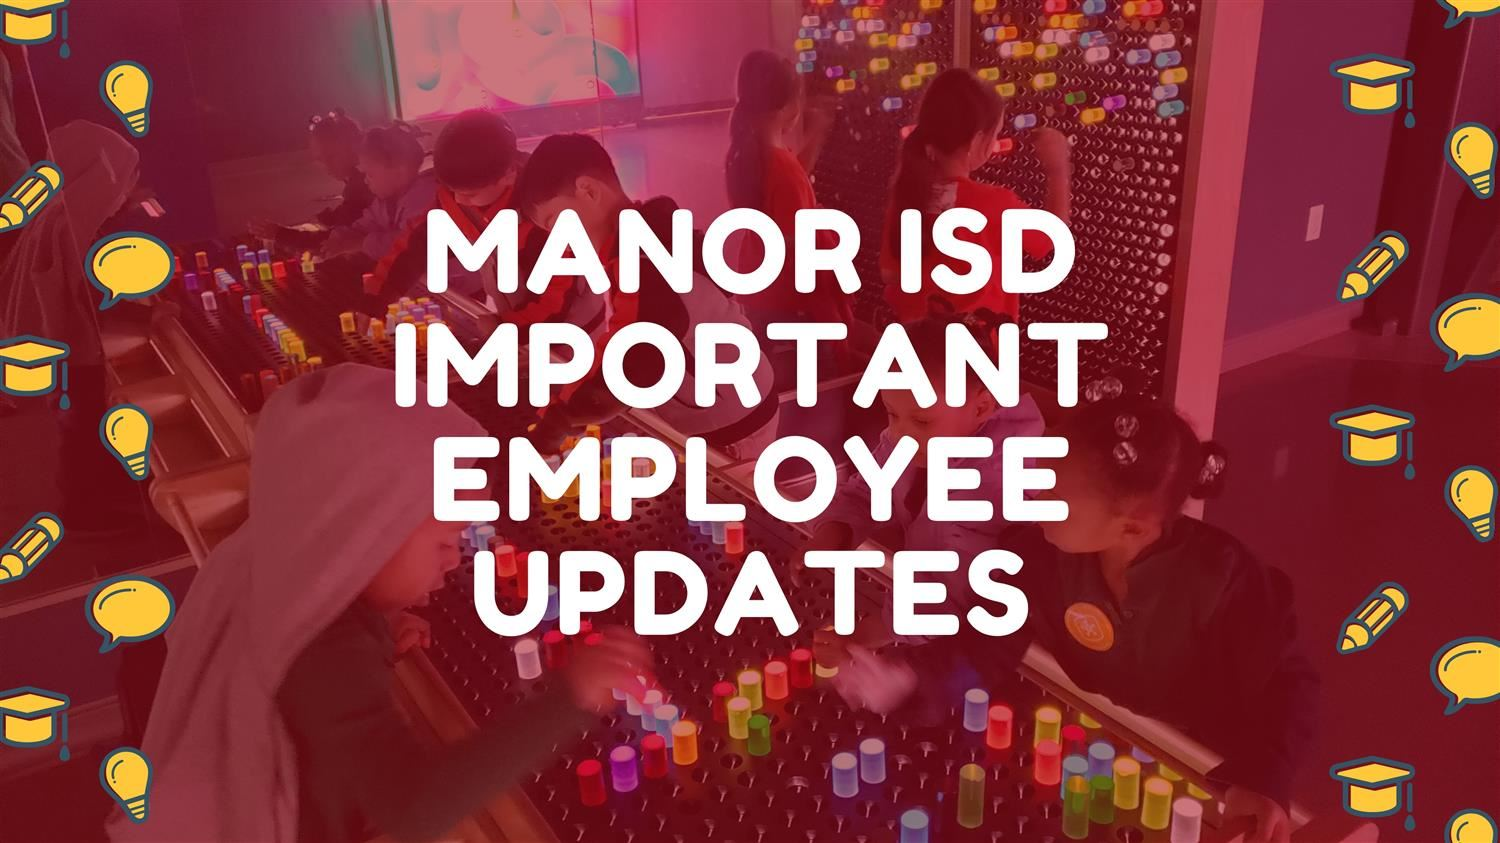 Manor ISD Important Employee Updates